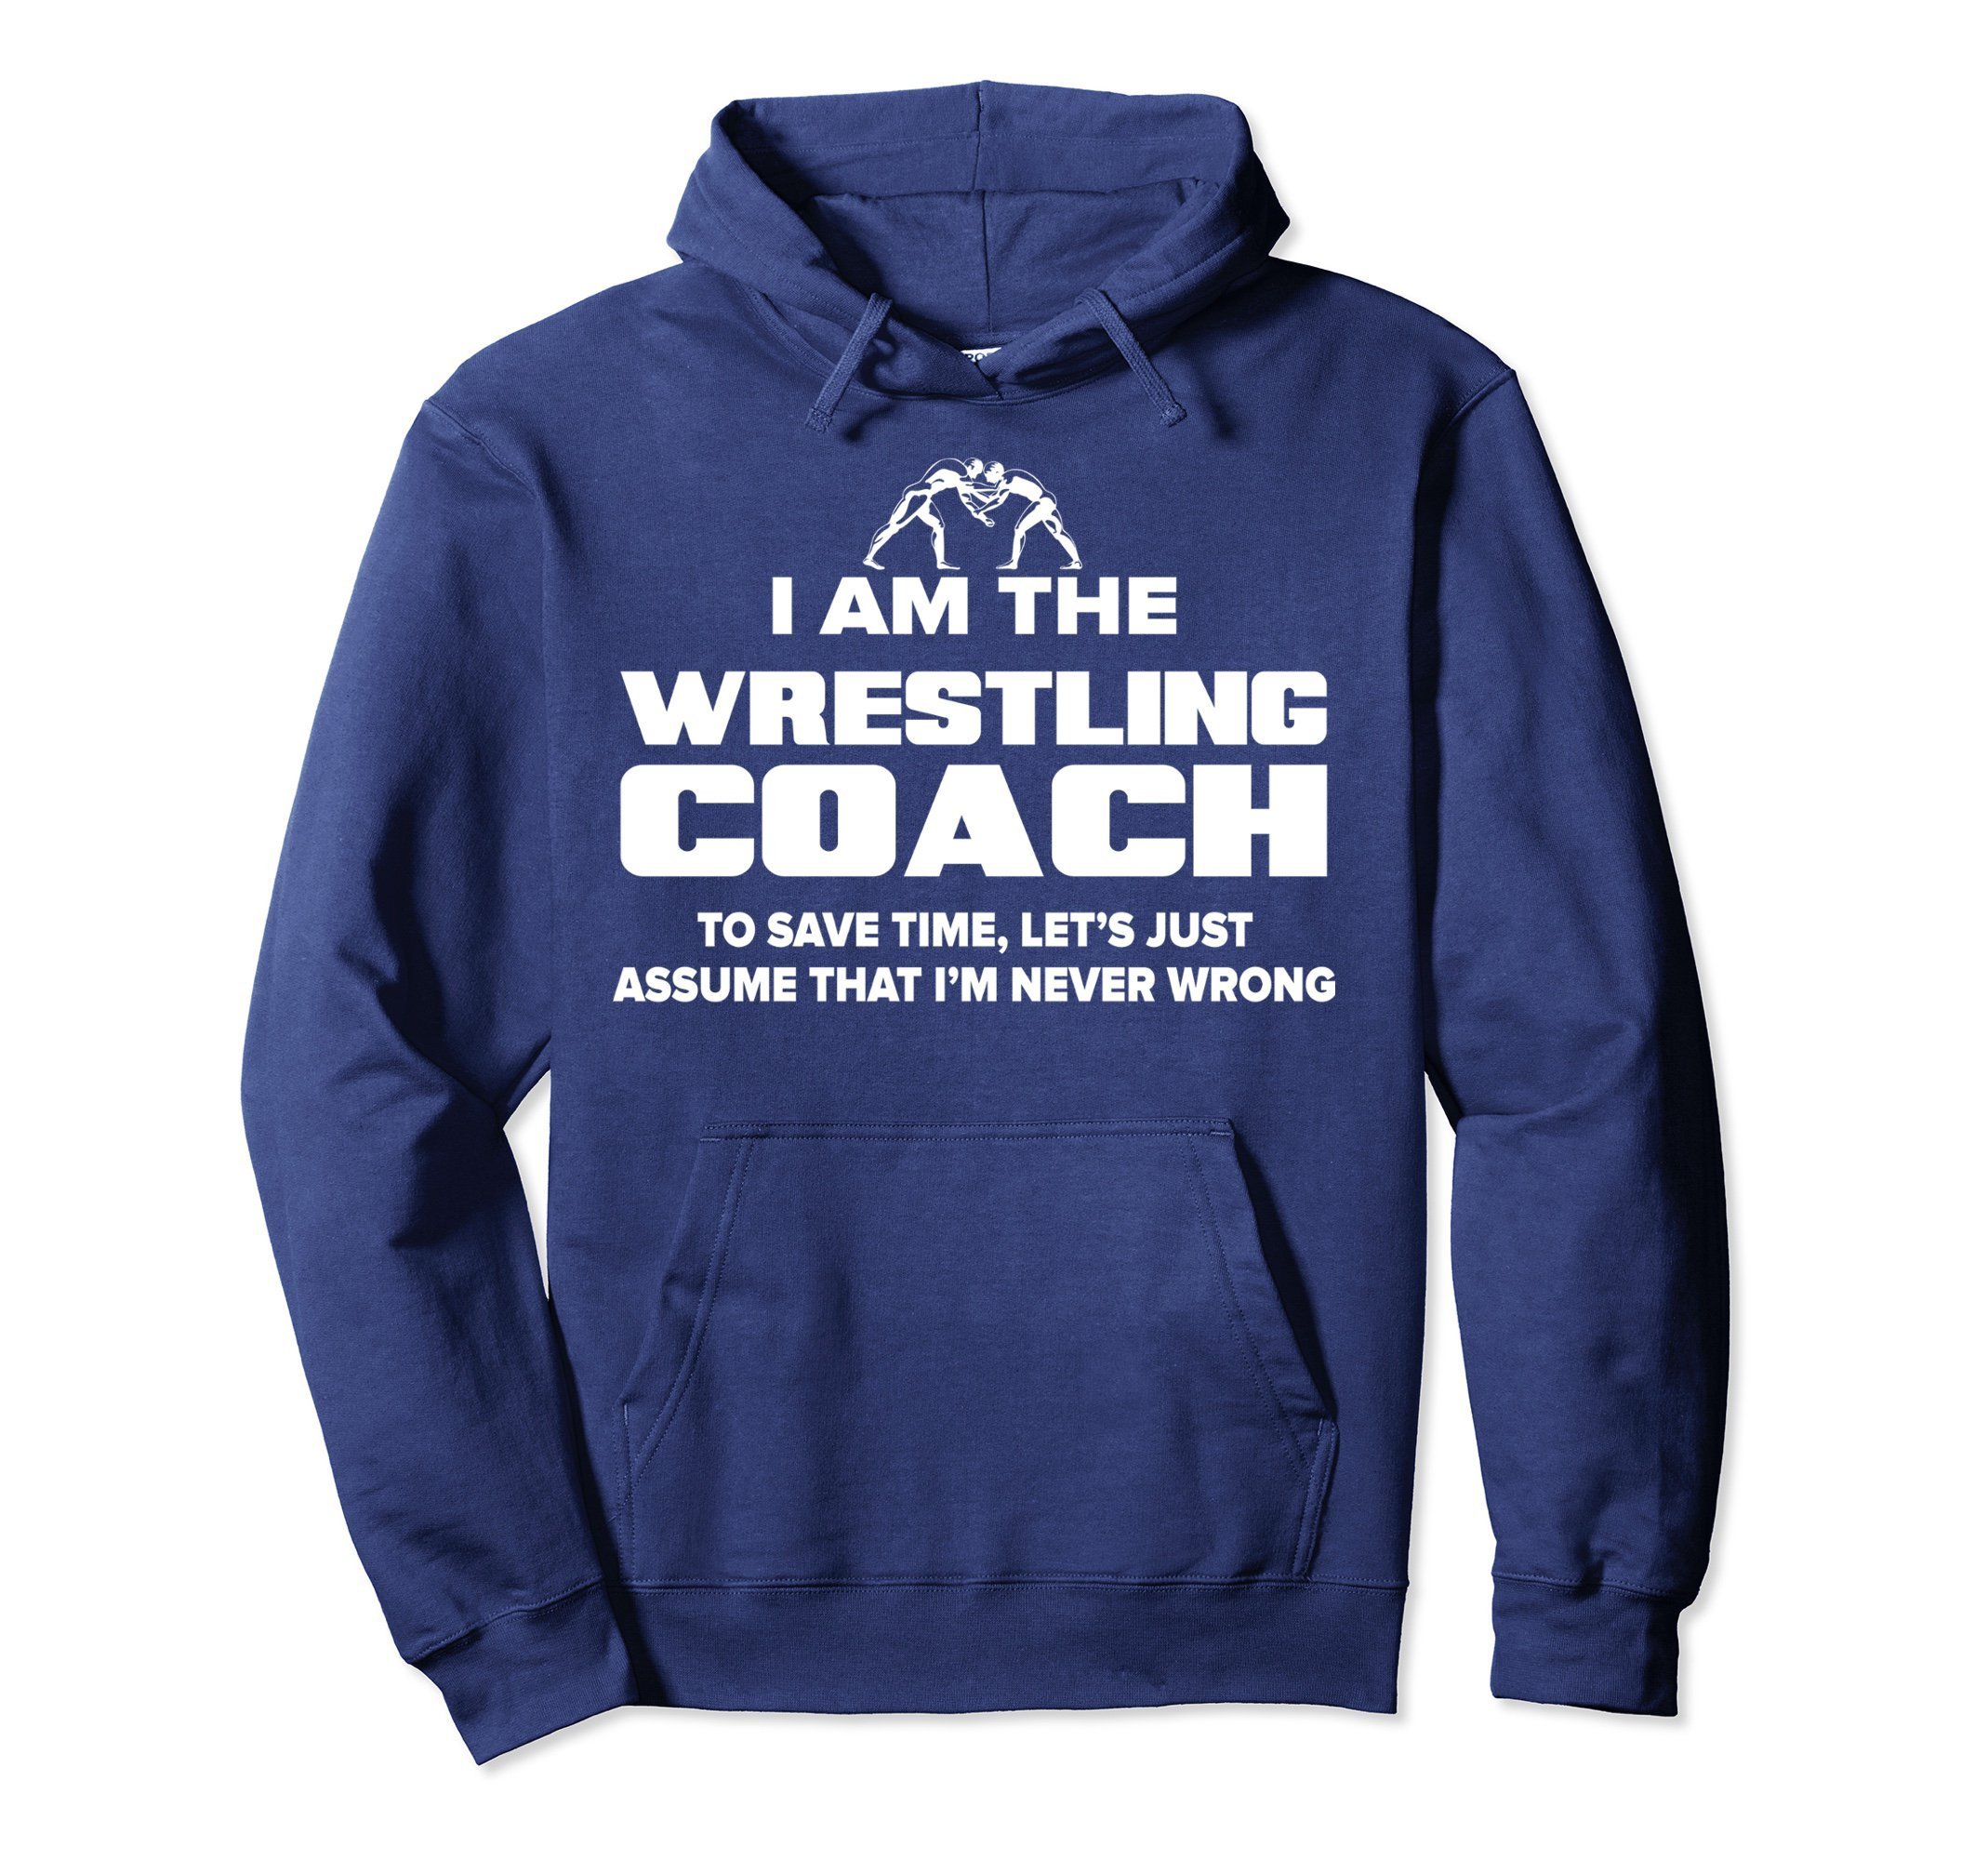 Unisex Wrestling Coach Pullover Hoodie - I'm Never Wrong! 2XL Navy by Wrestling Coach Hoodie